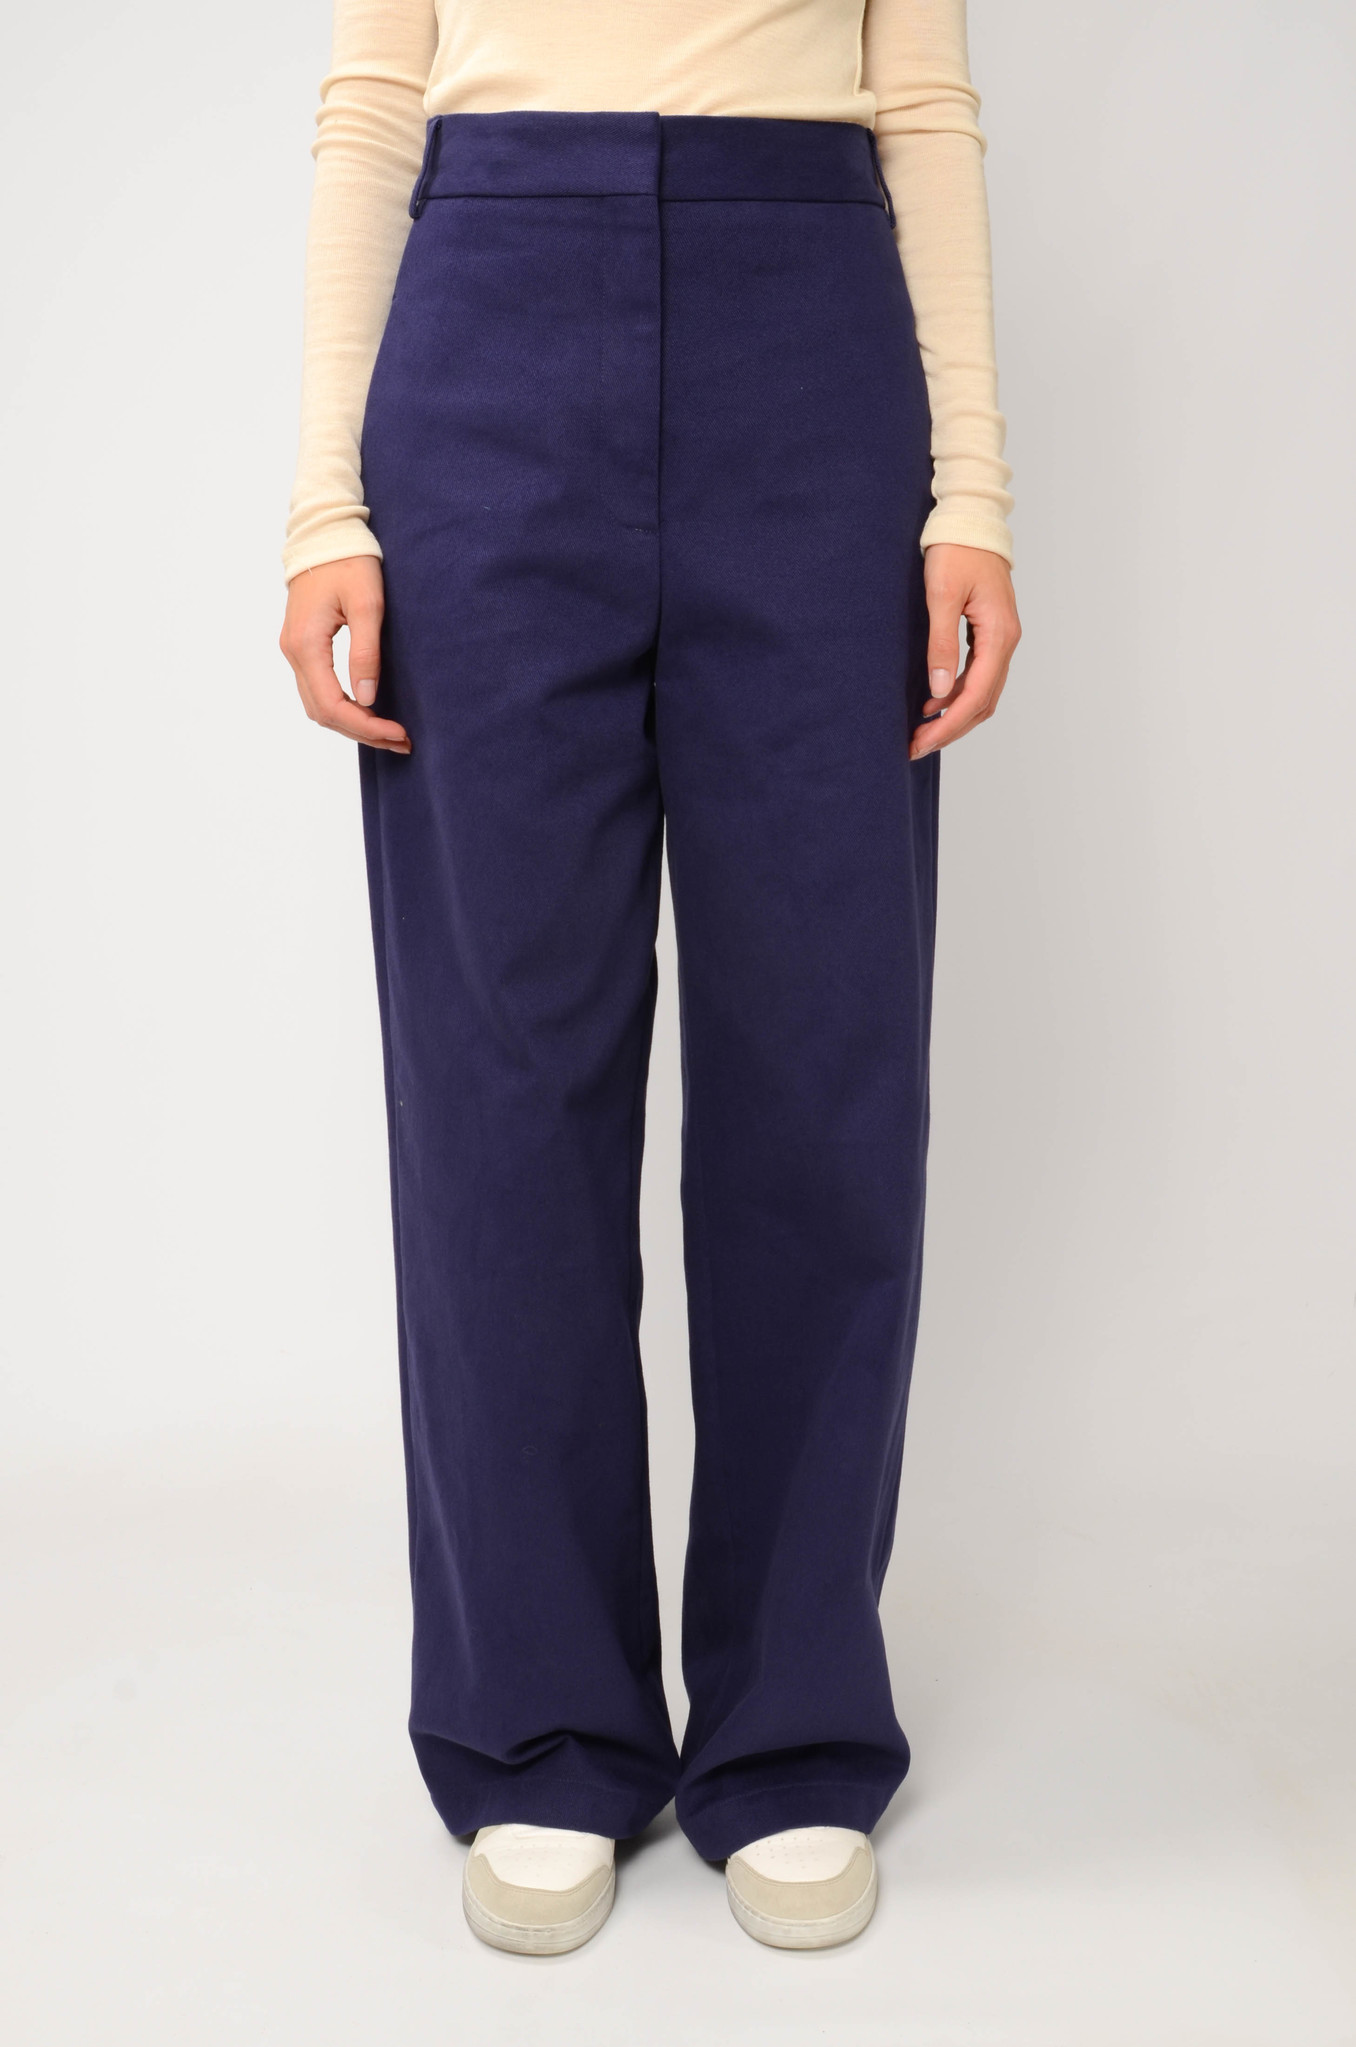 ANNIE TROUSERS IN NAVY BLUE-1